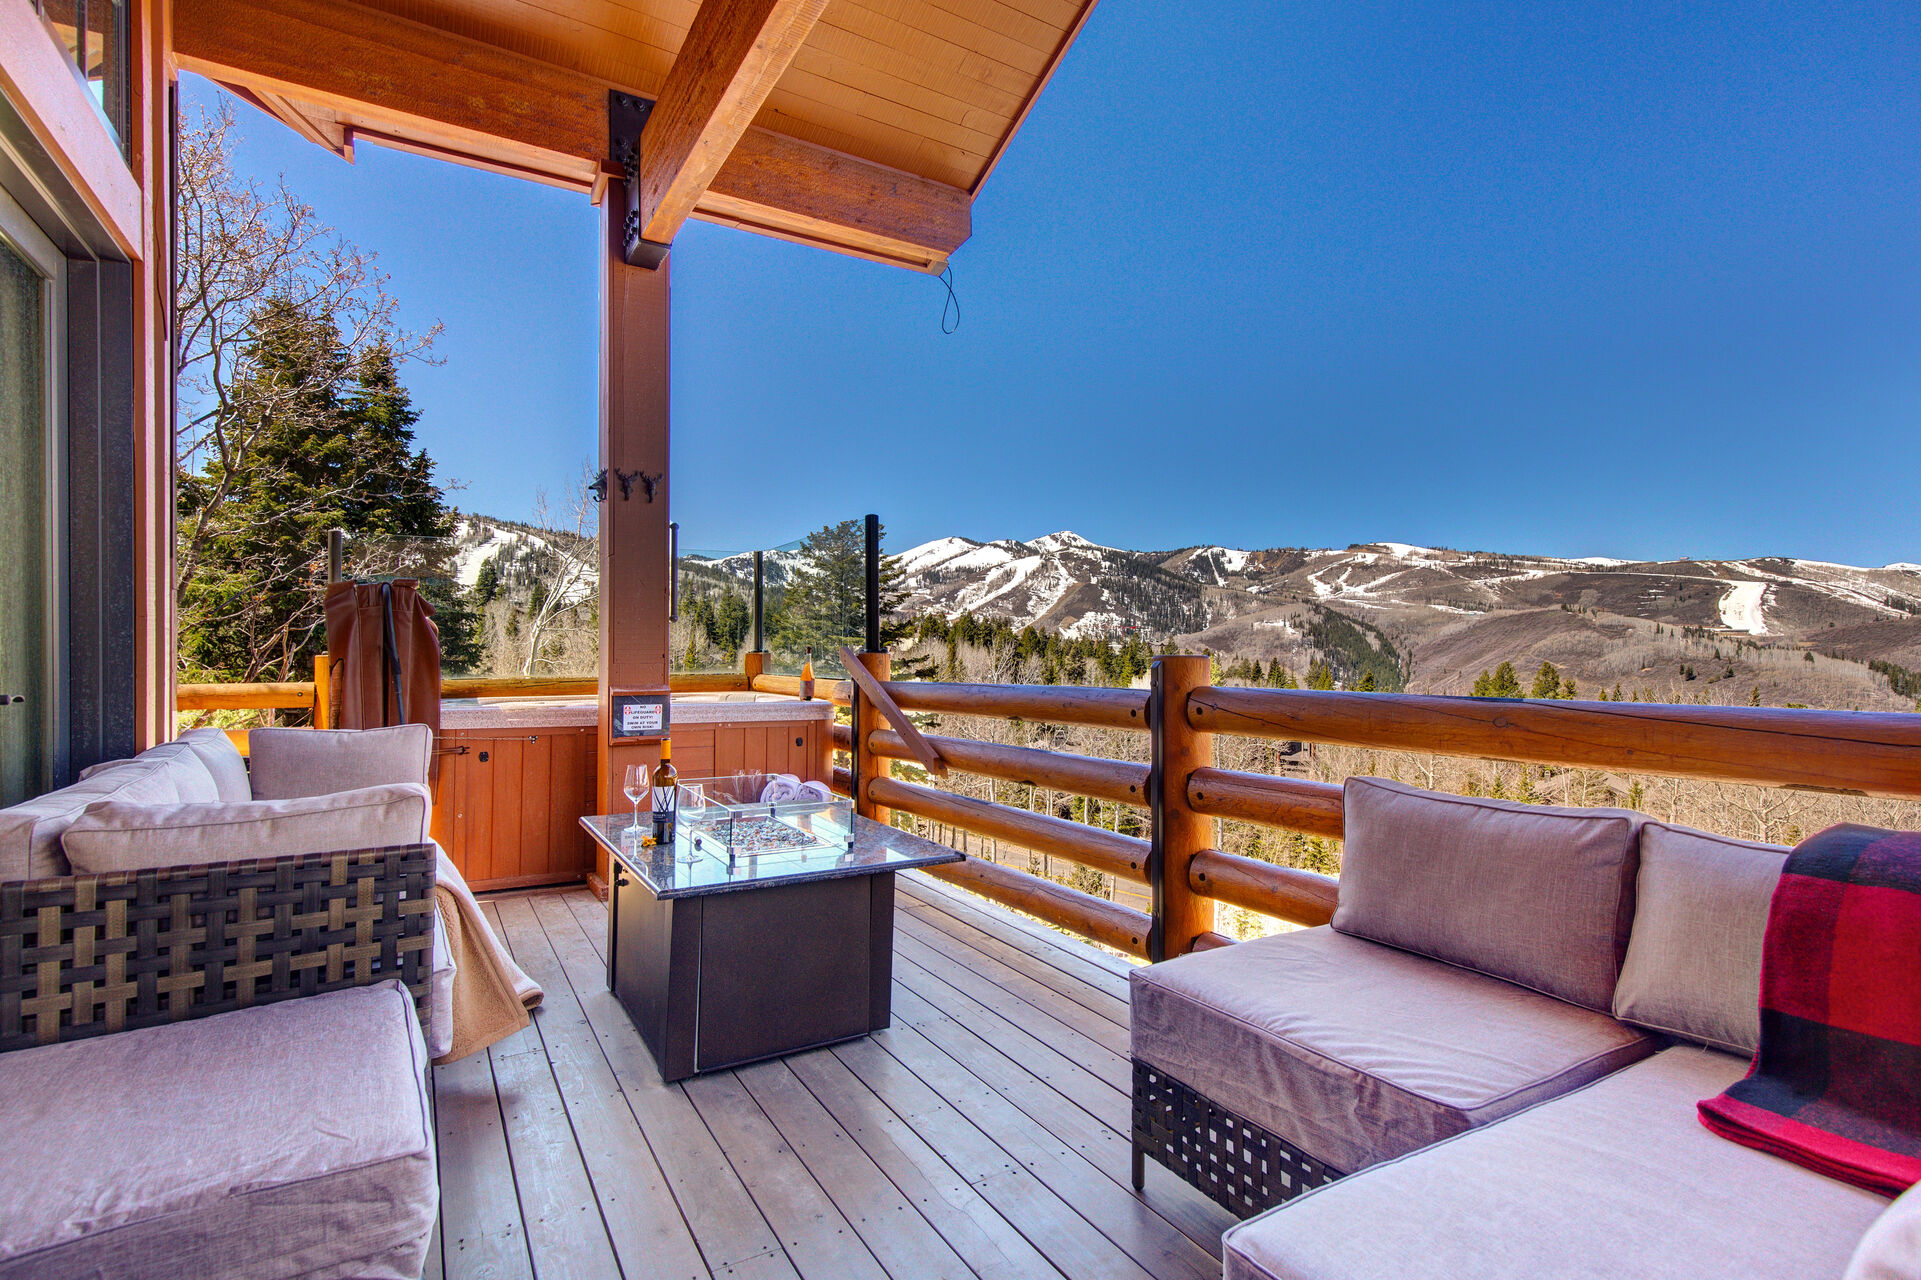 Stunning Home in an Exclusive Deer Valley Community with Amazing Views!